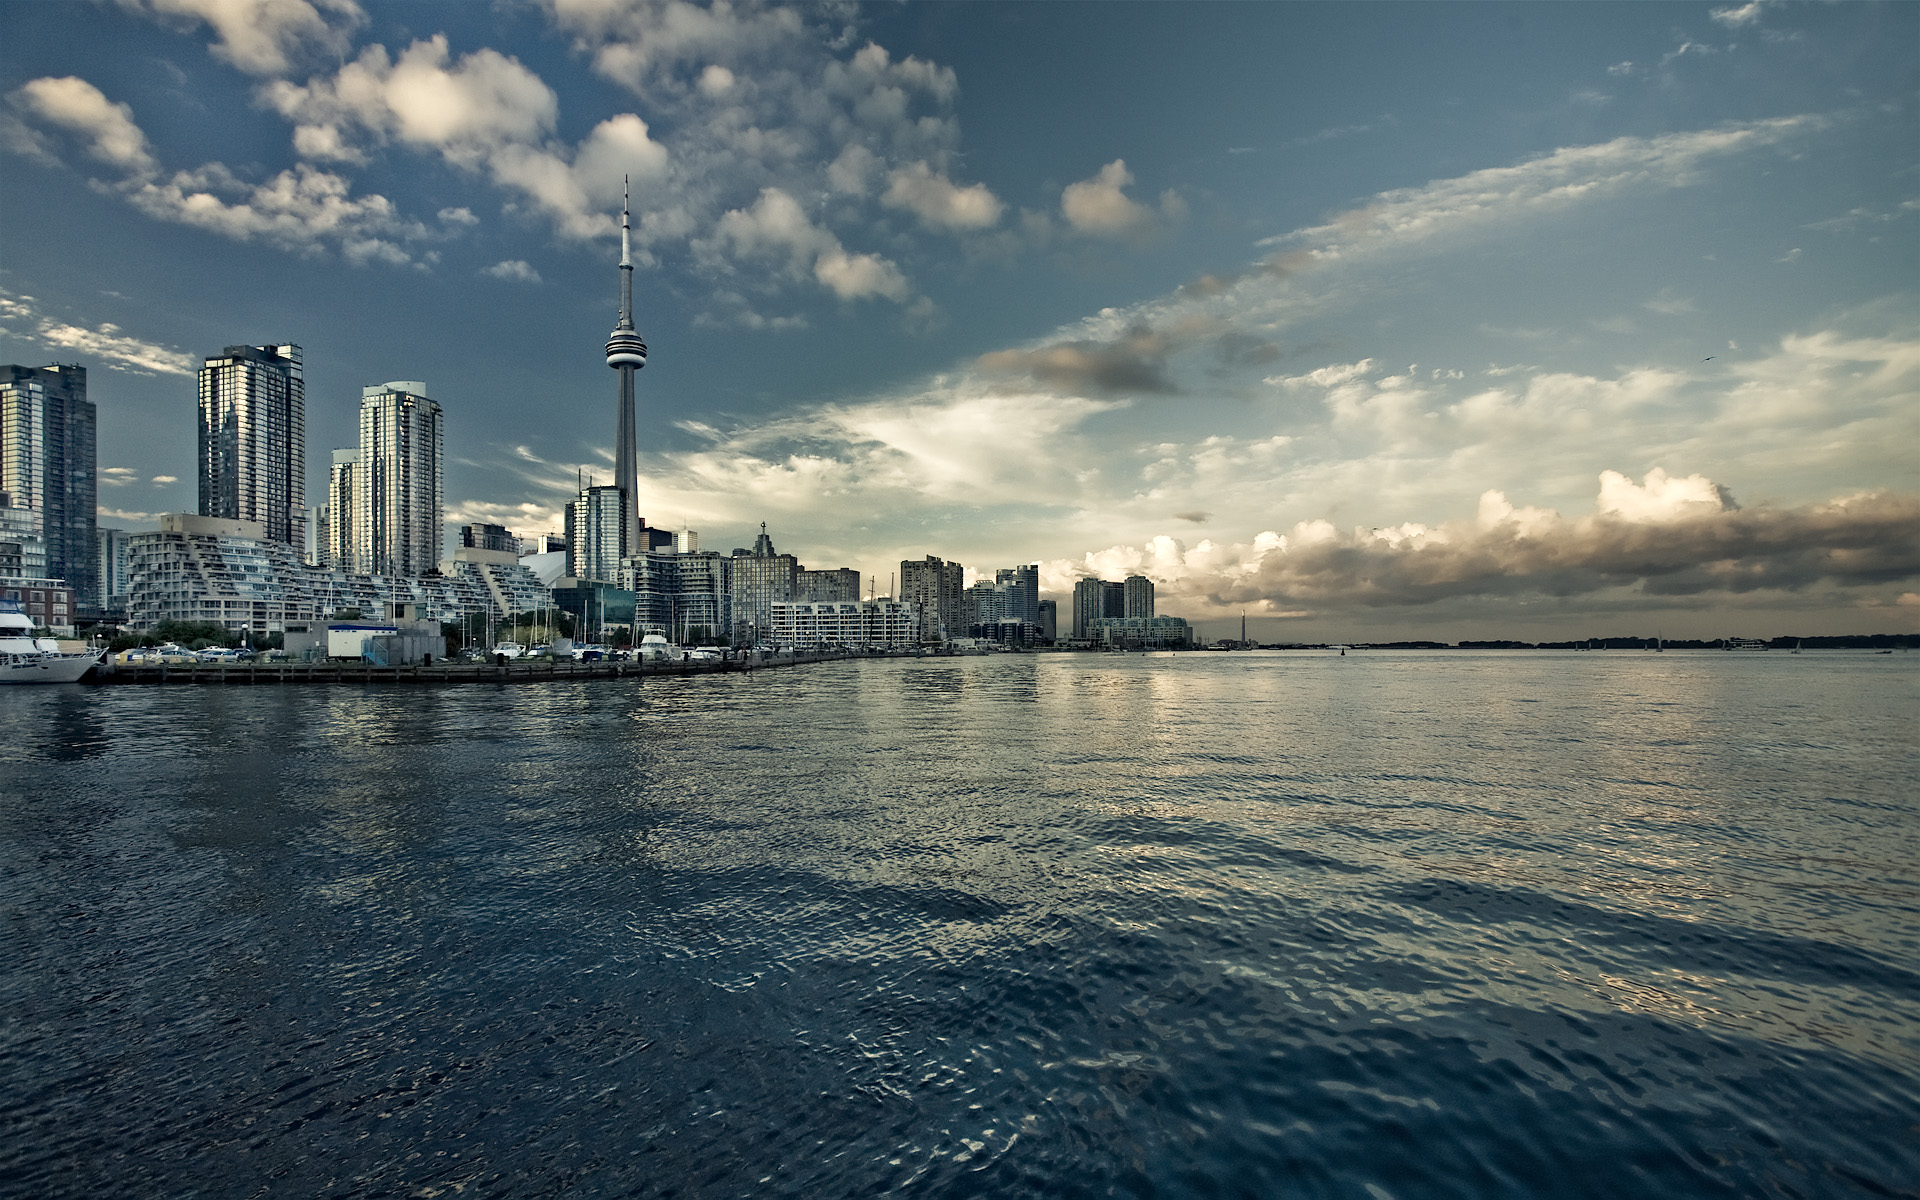 Funny Hd Quotes Wallpapers Daily Wallpaper Toronto Skyline I Like To Waste My Time